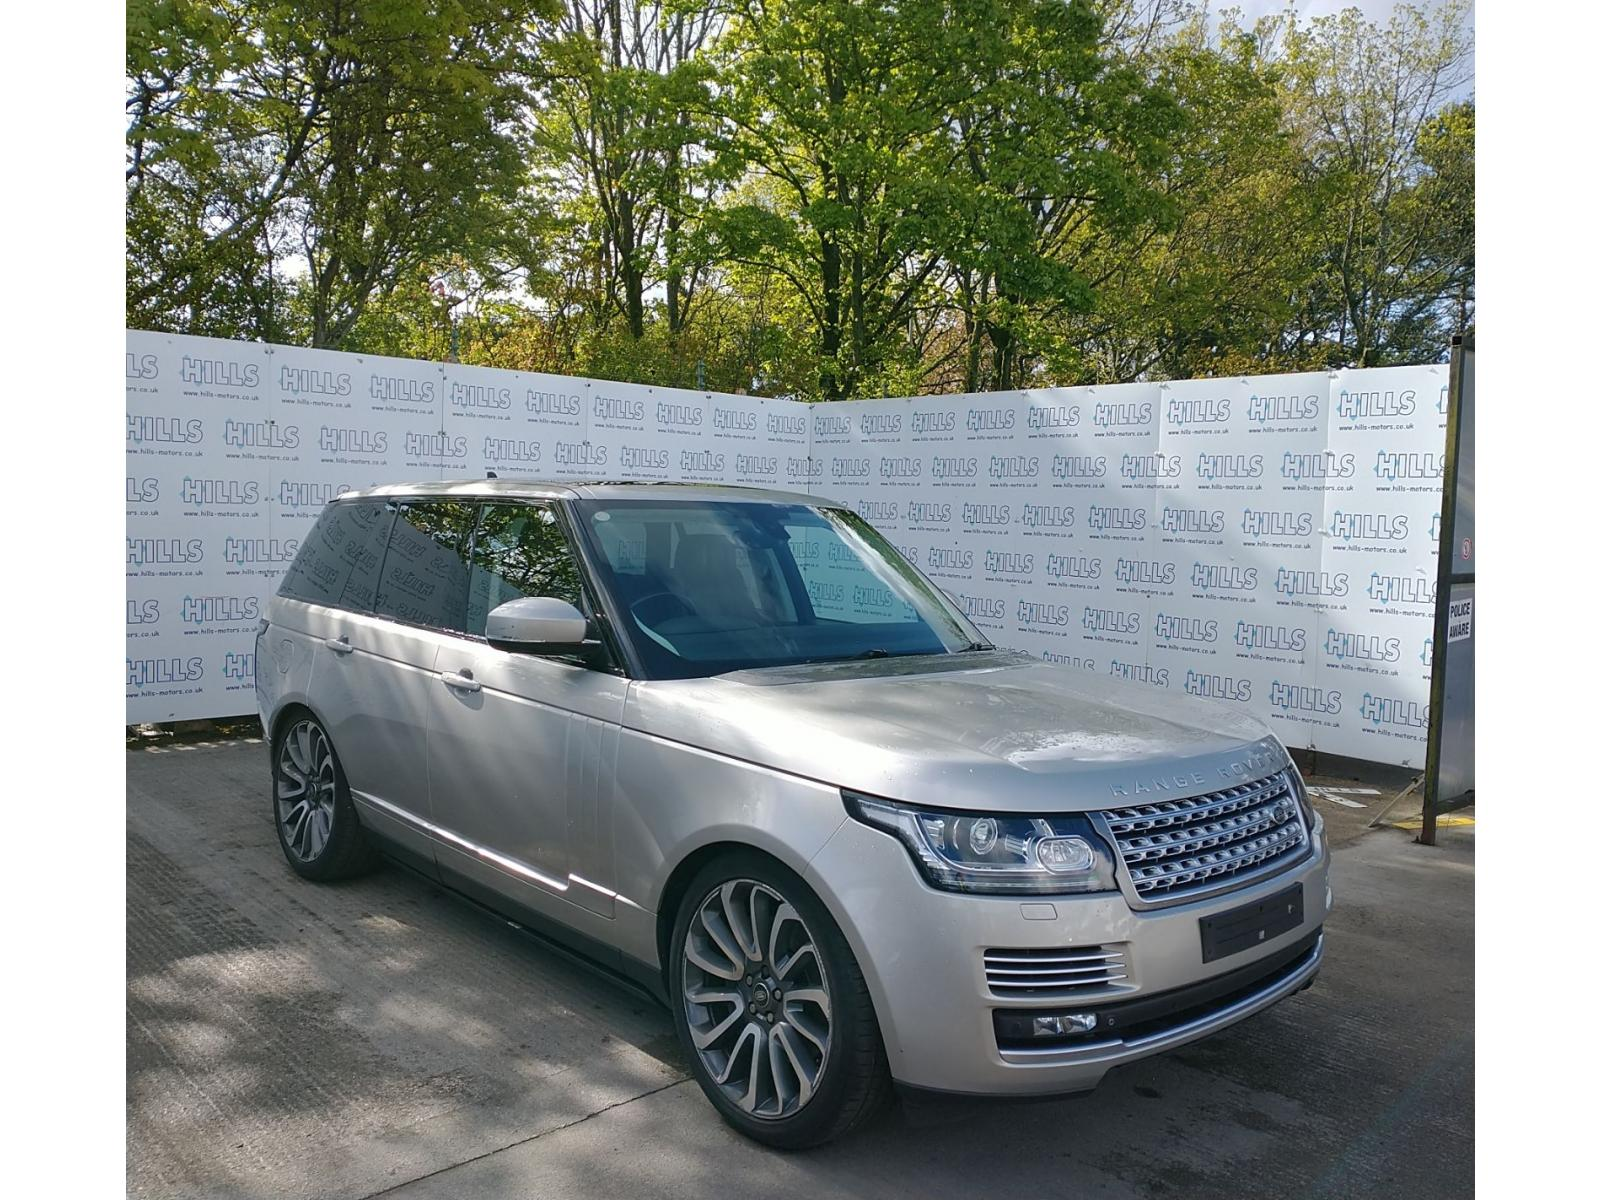 2015 Land Rover Range Rover SDV8 AUTOBIOGRAPHY 4367cc TURBO Diesel Automatic 8 Speed ESTATE